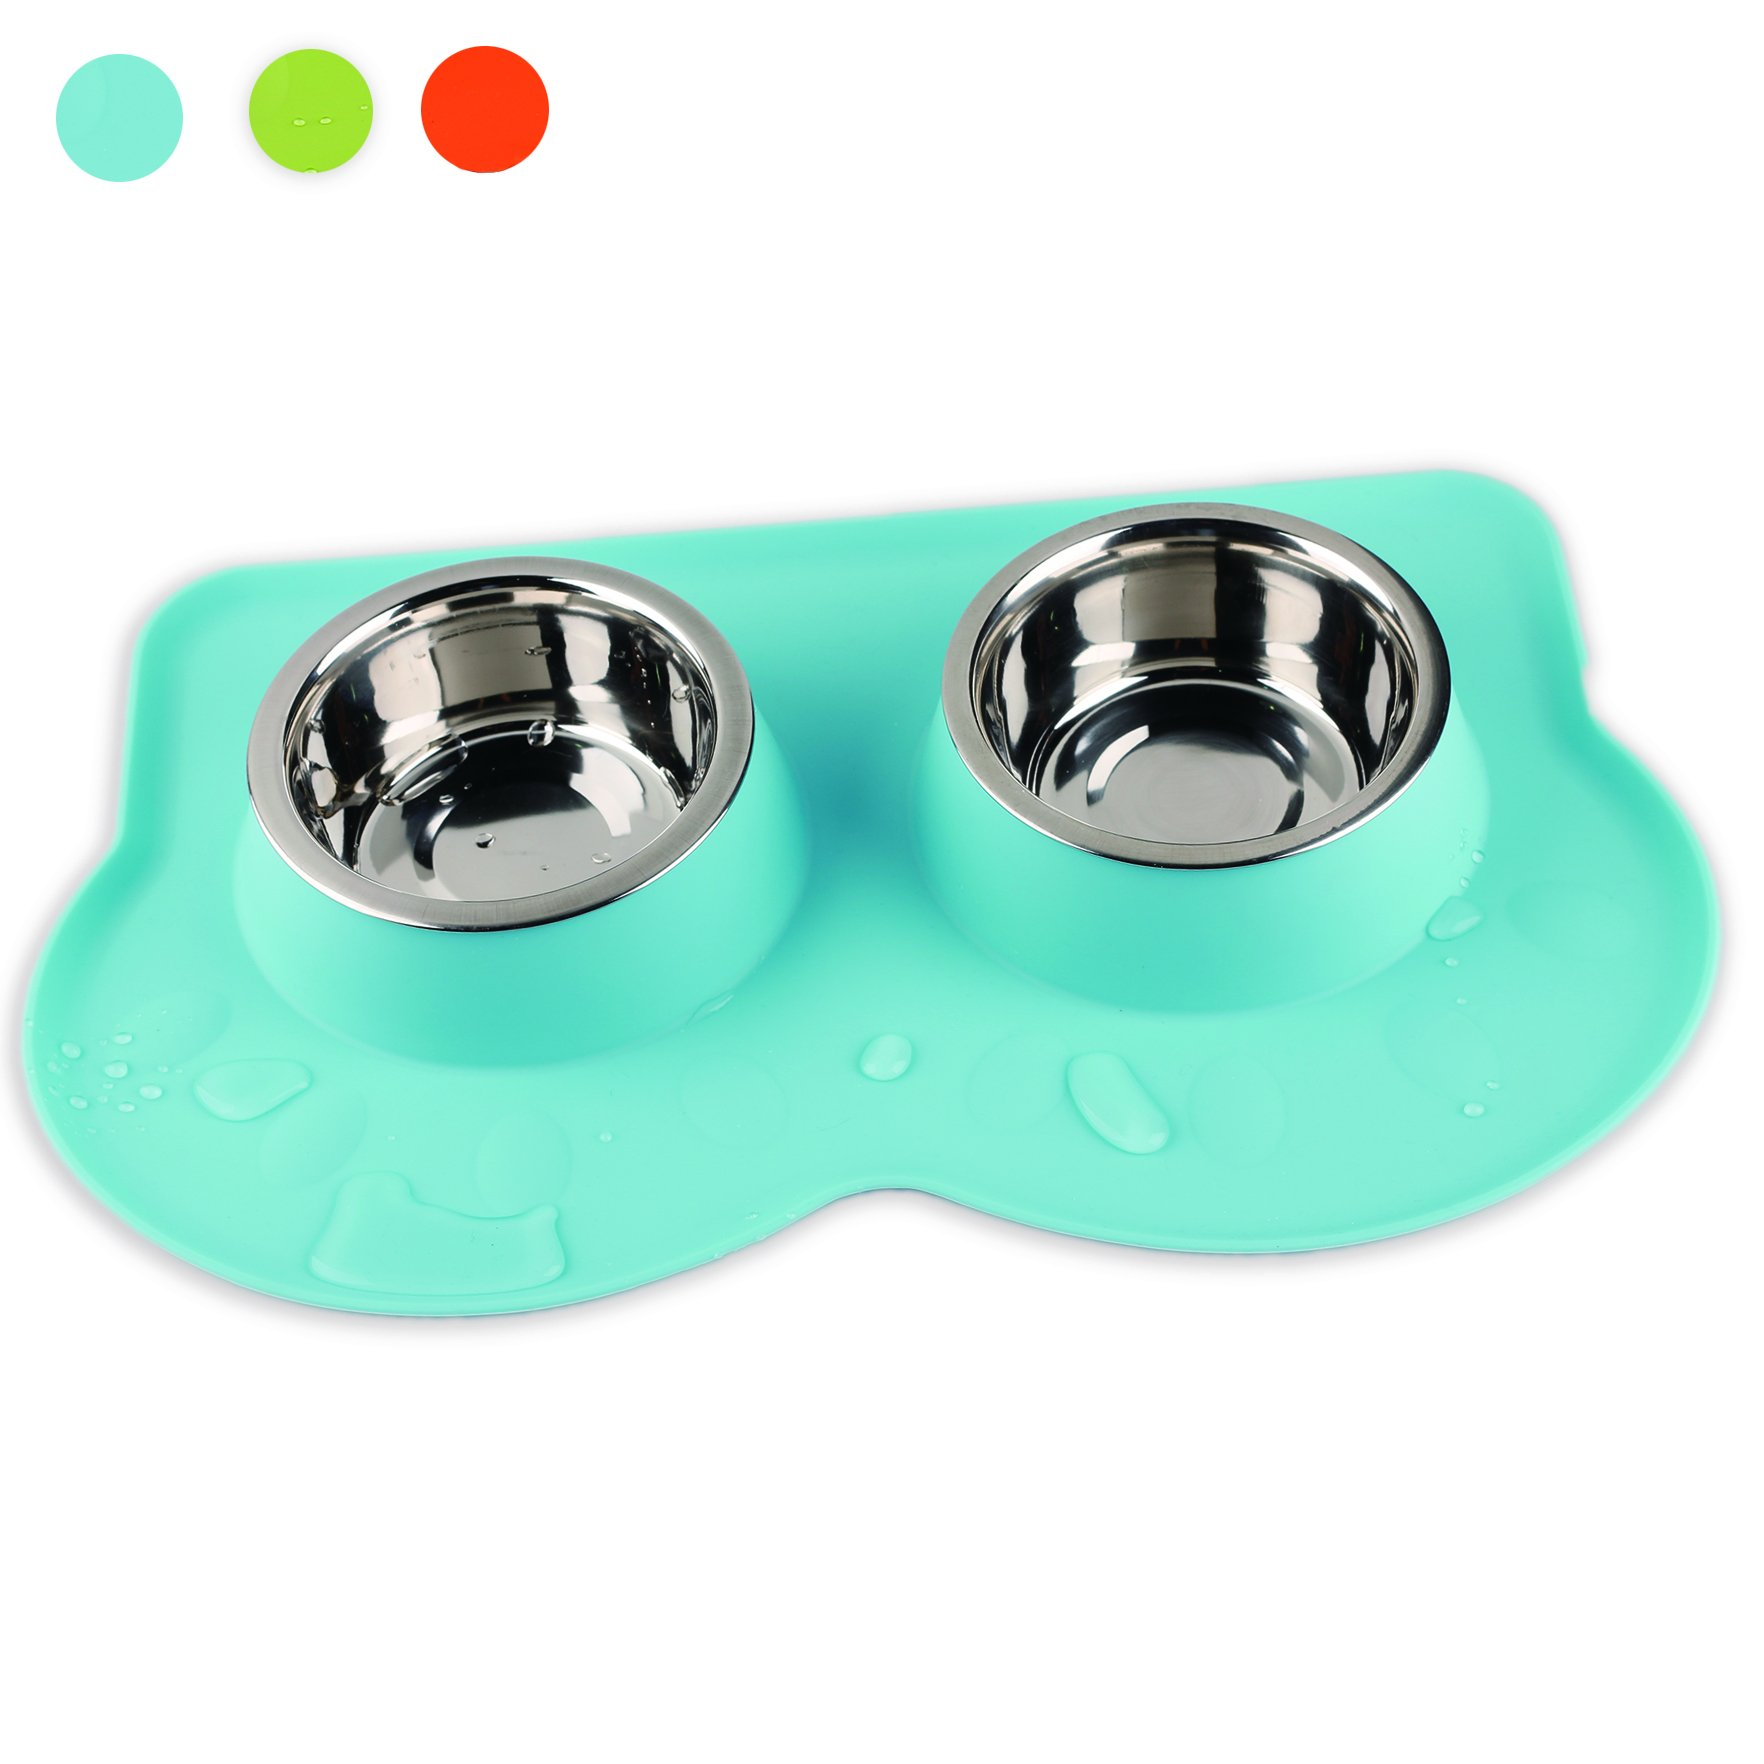 PAWISE Dog Bowls Double Stainless Steel Bowls With Non-skid Antiskid Removable Silicone Mat